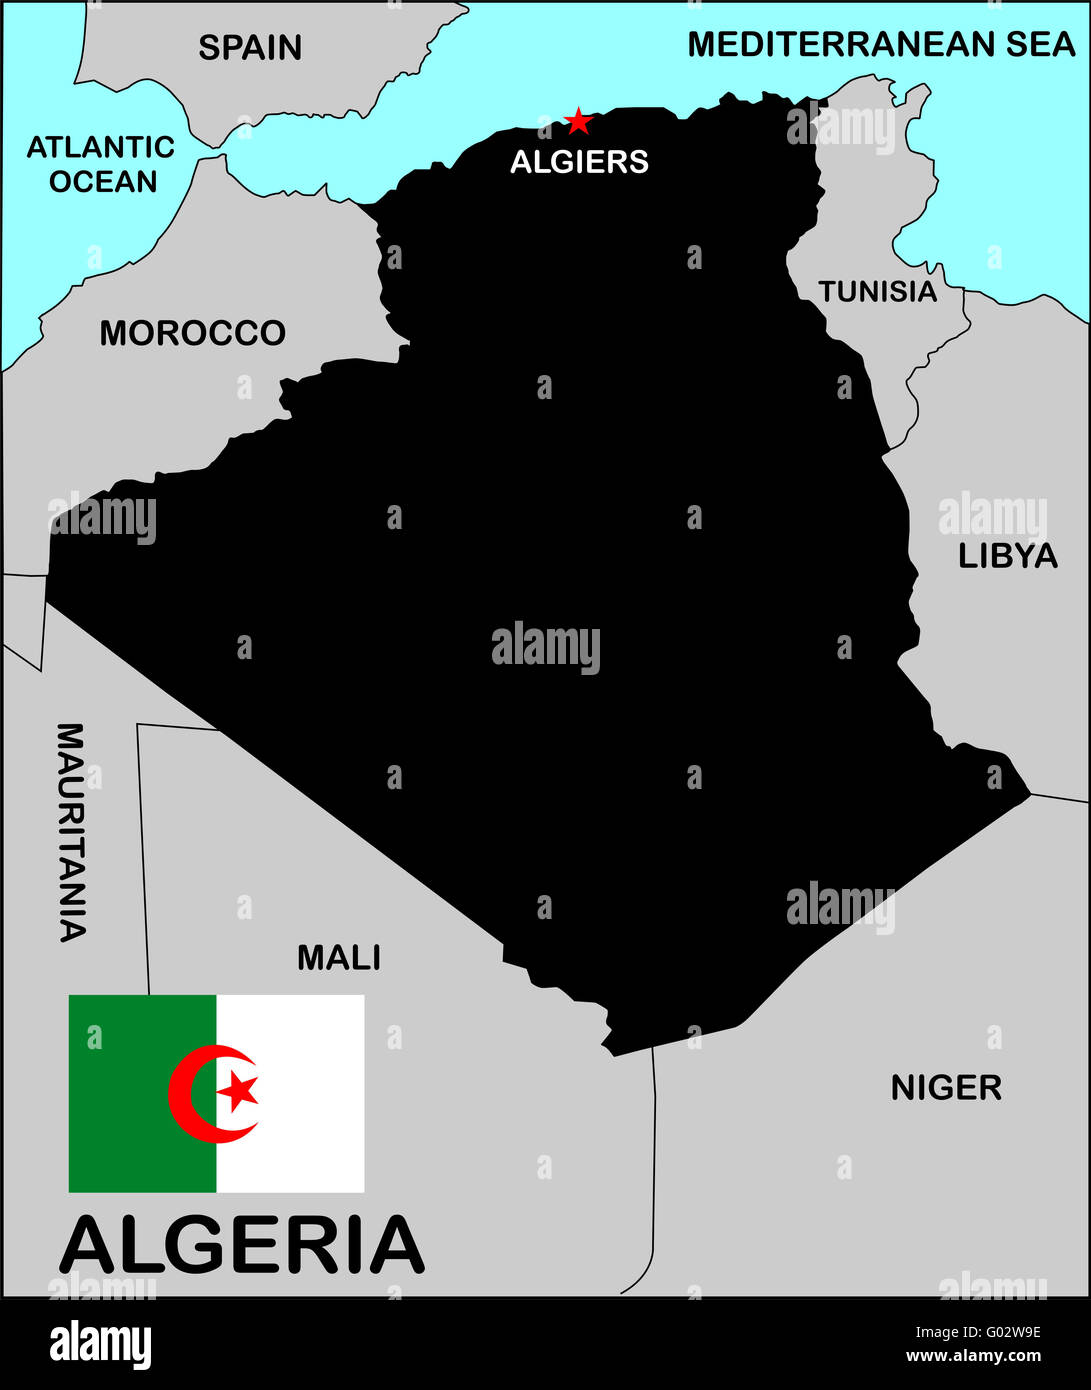 Algeria Political Map - Stock Image